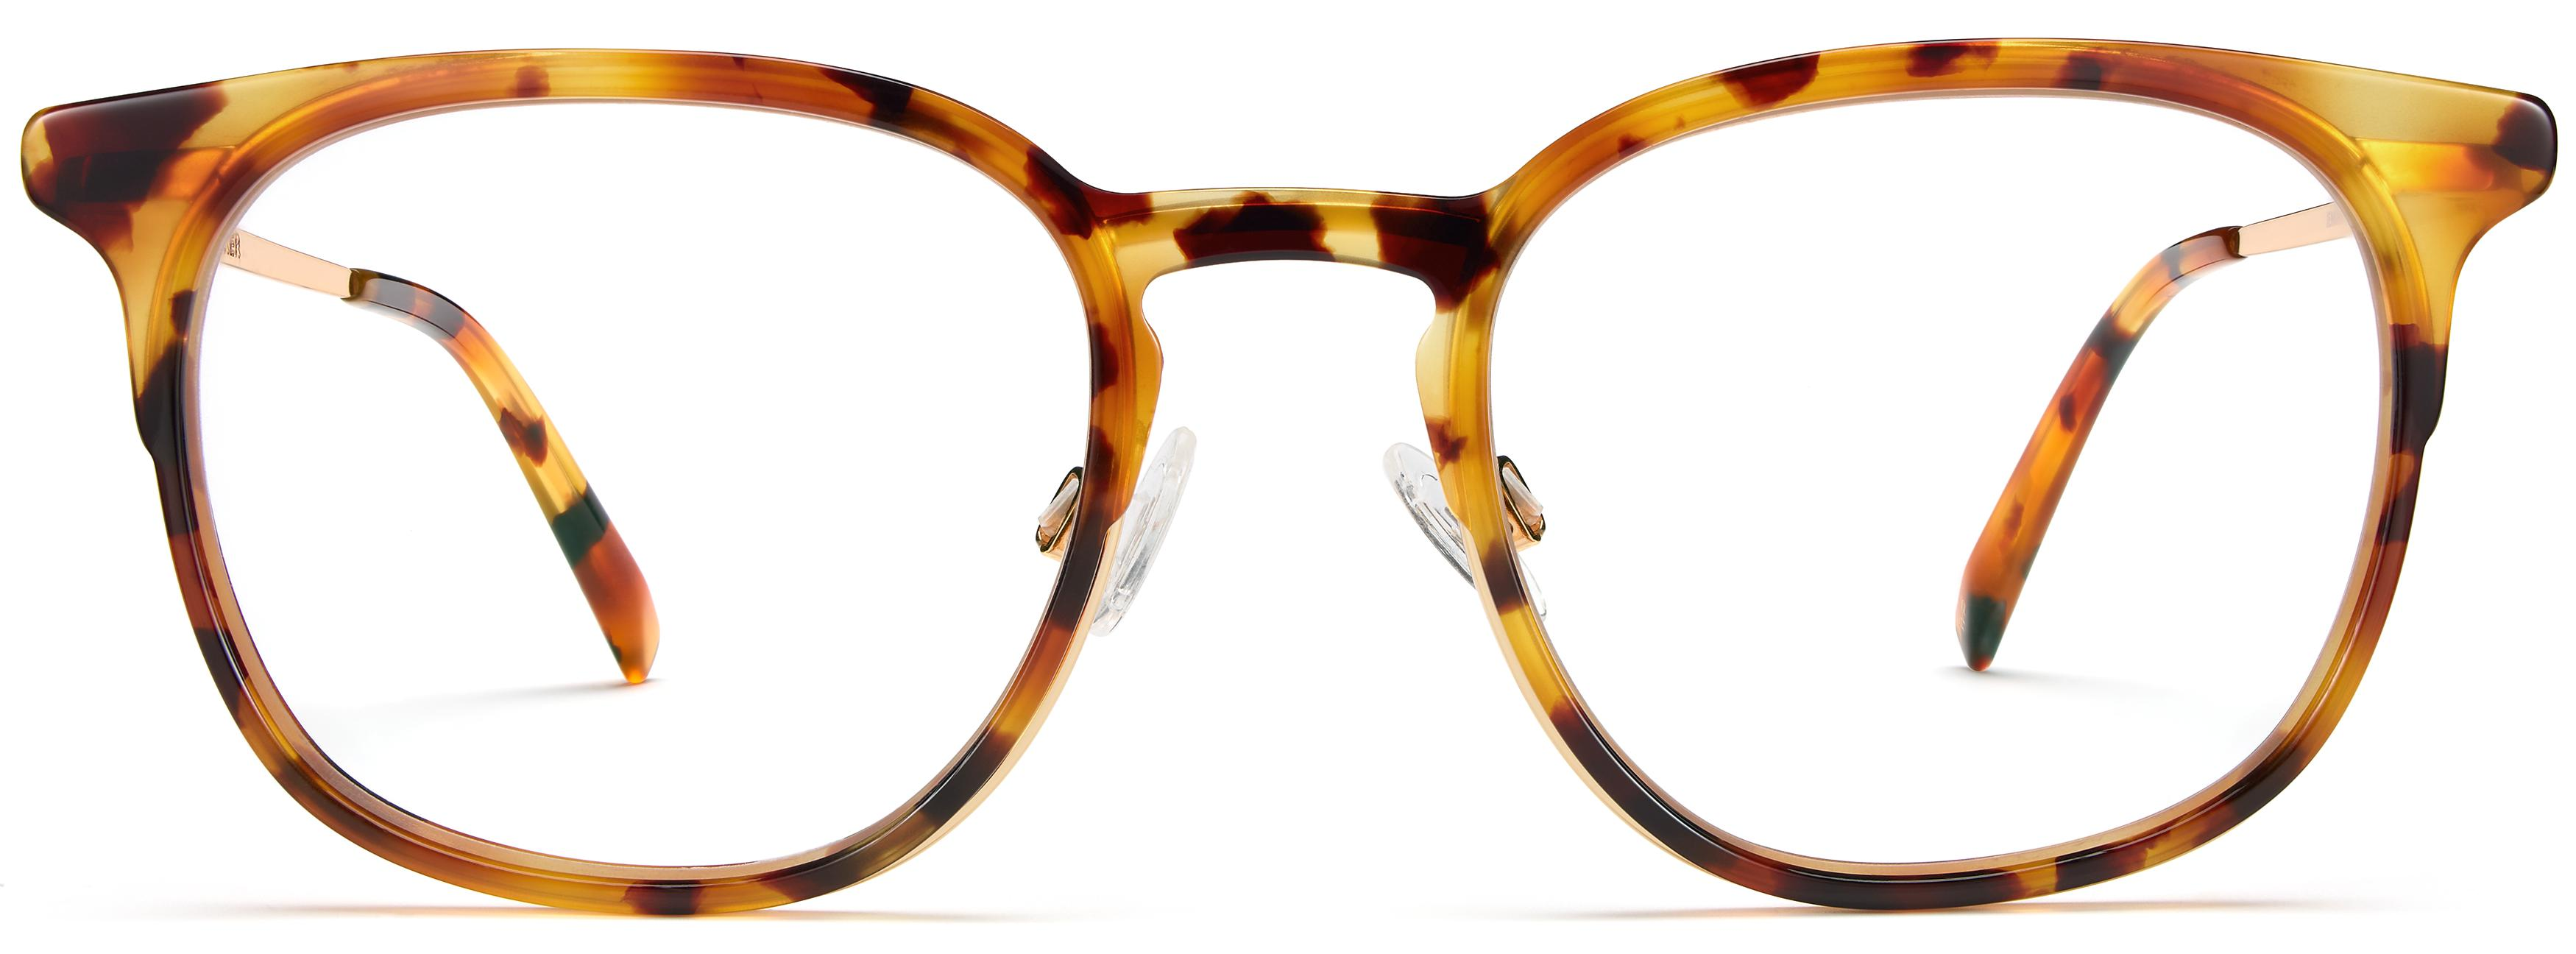 166d51f4a4 Men s Eyeglasses